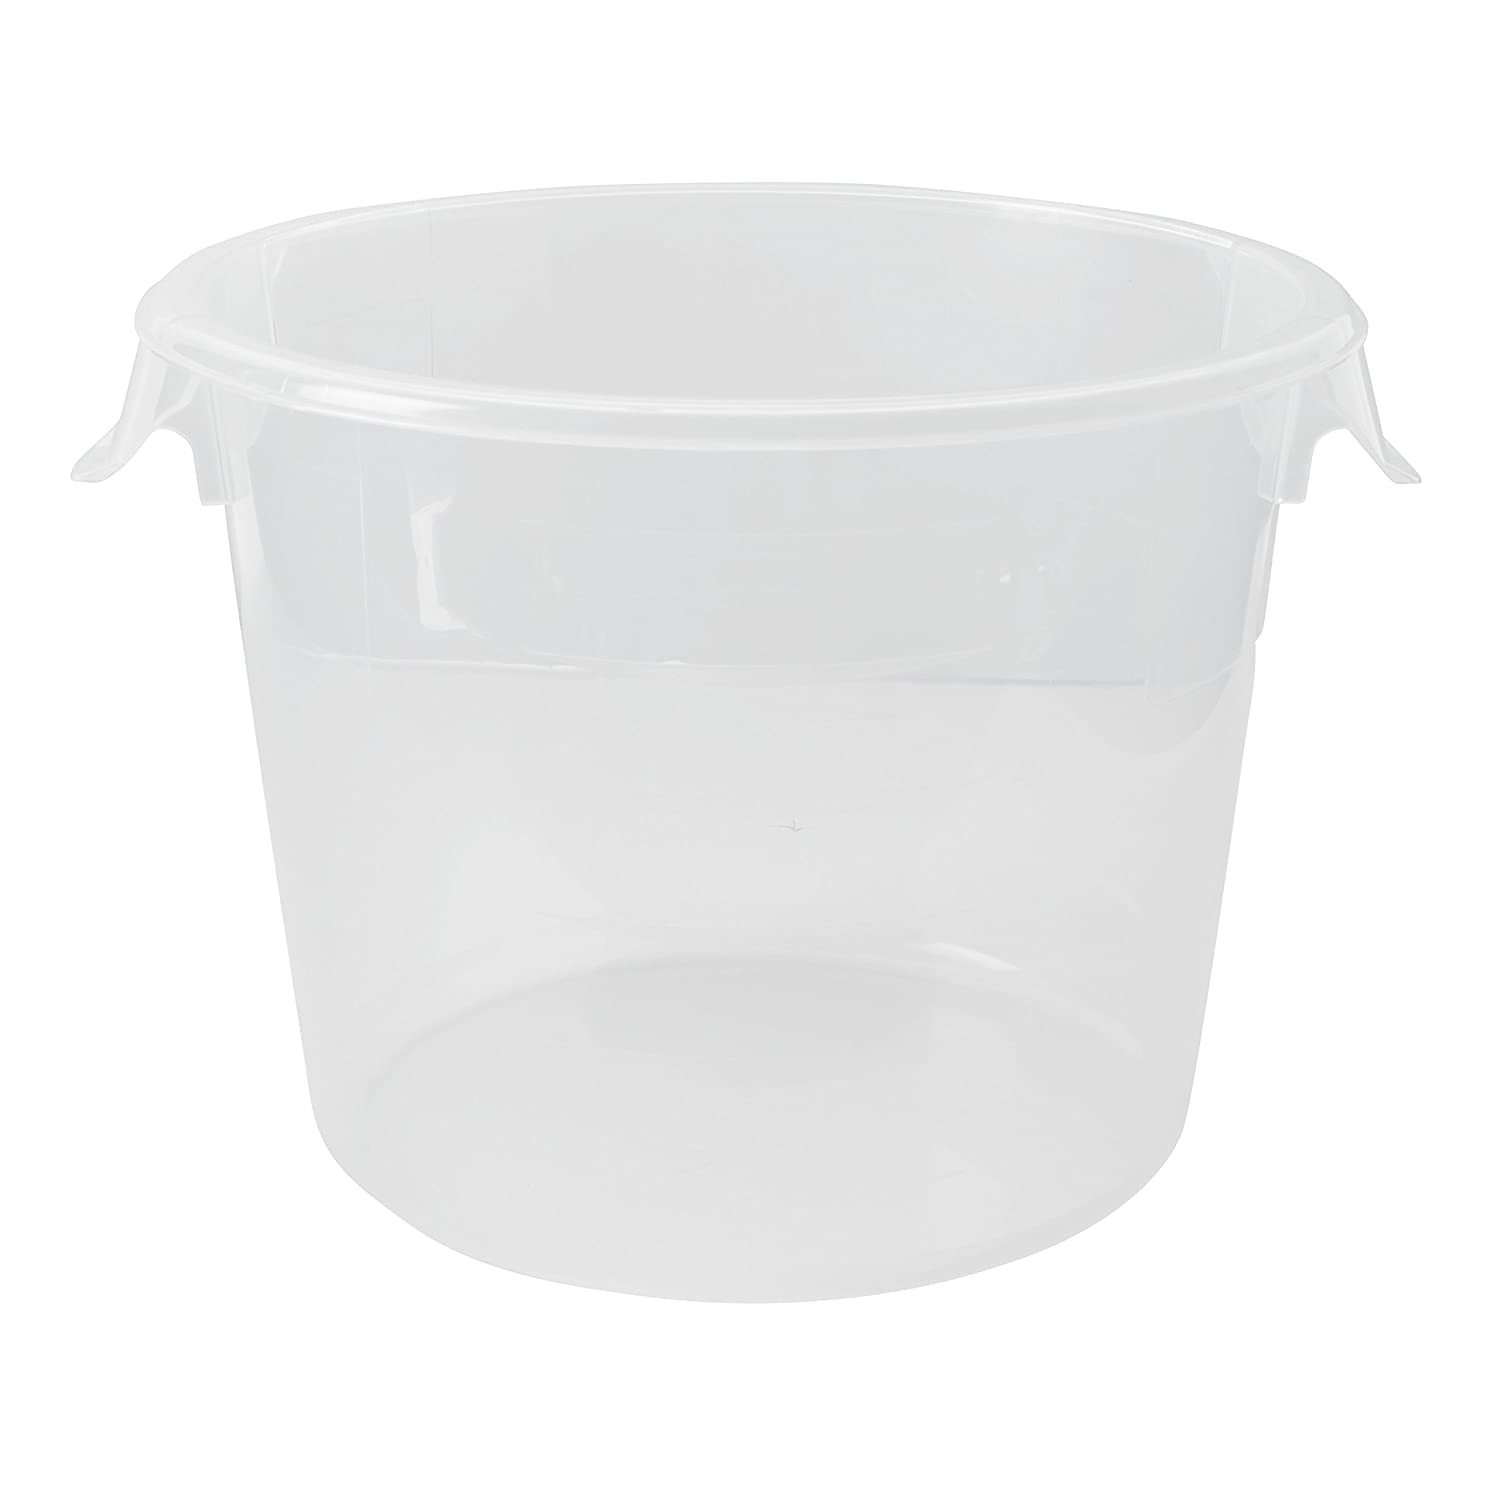 Rubbermaid Commercial Products FG572324CLR Food Storage Container, Round, Polyethylene, 6 Quart, Clear (Pack of 12)